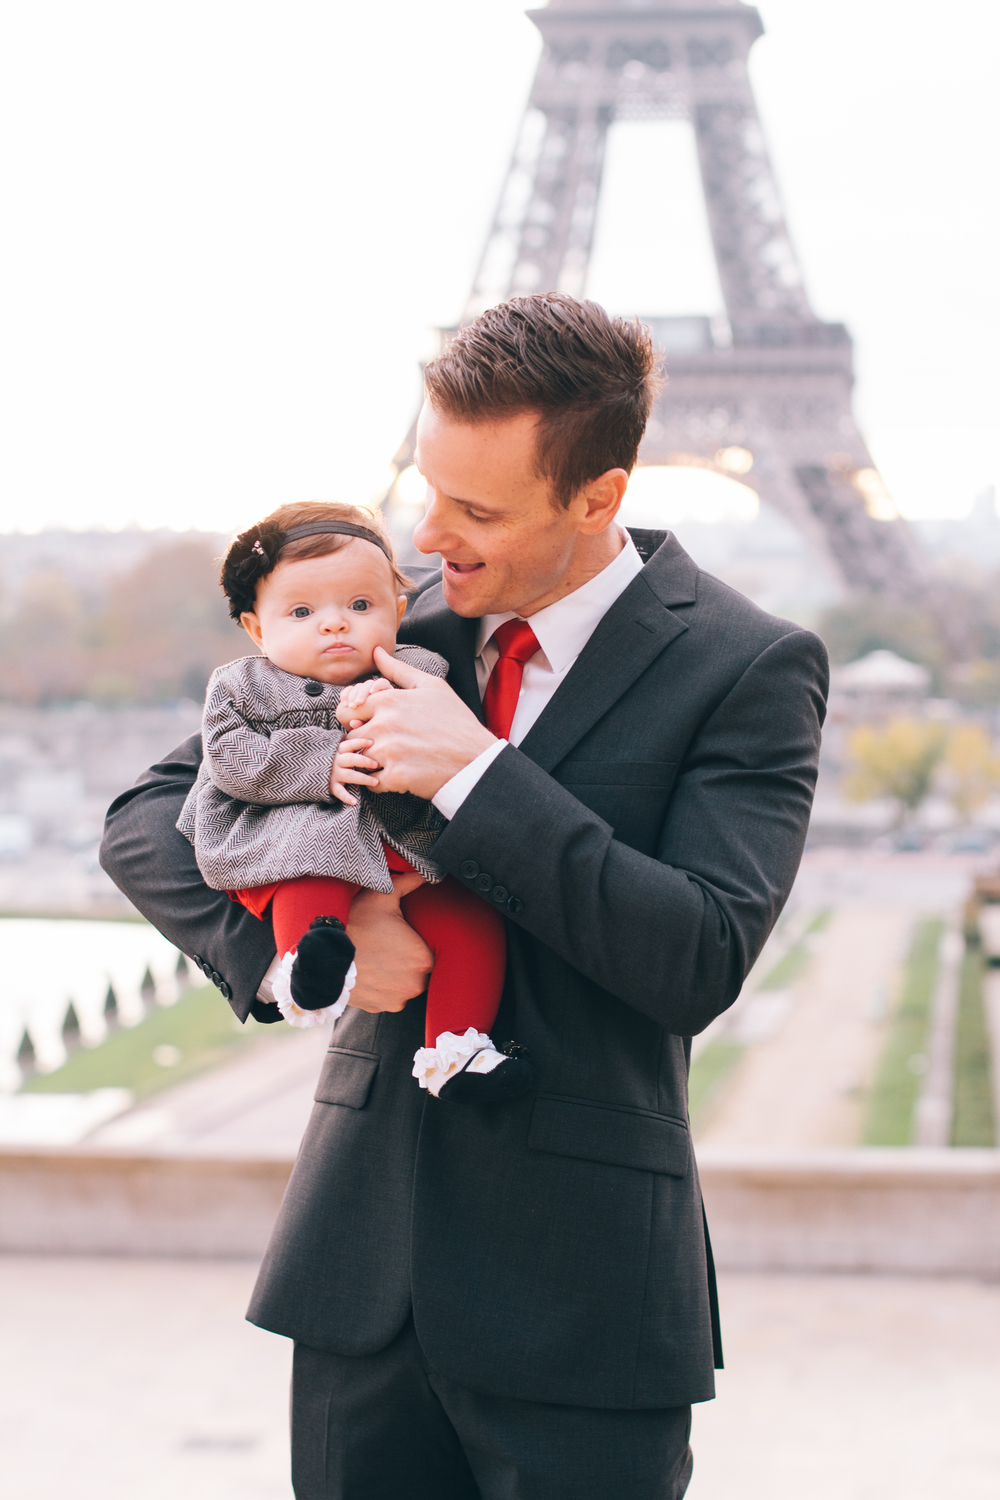 FLYTOGRAPHER | Paris Vacation Photographer - 3